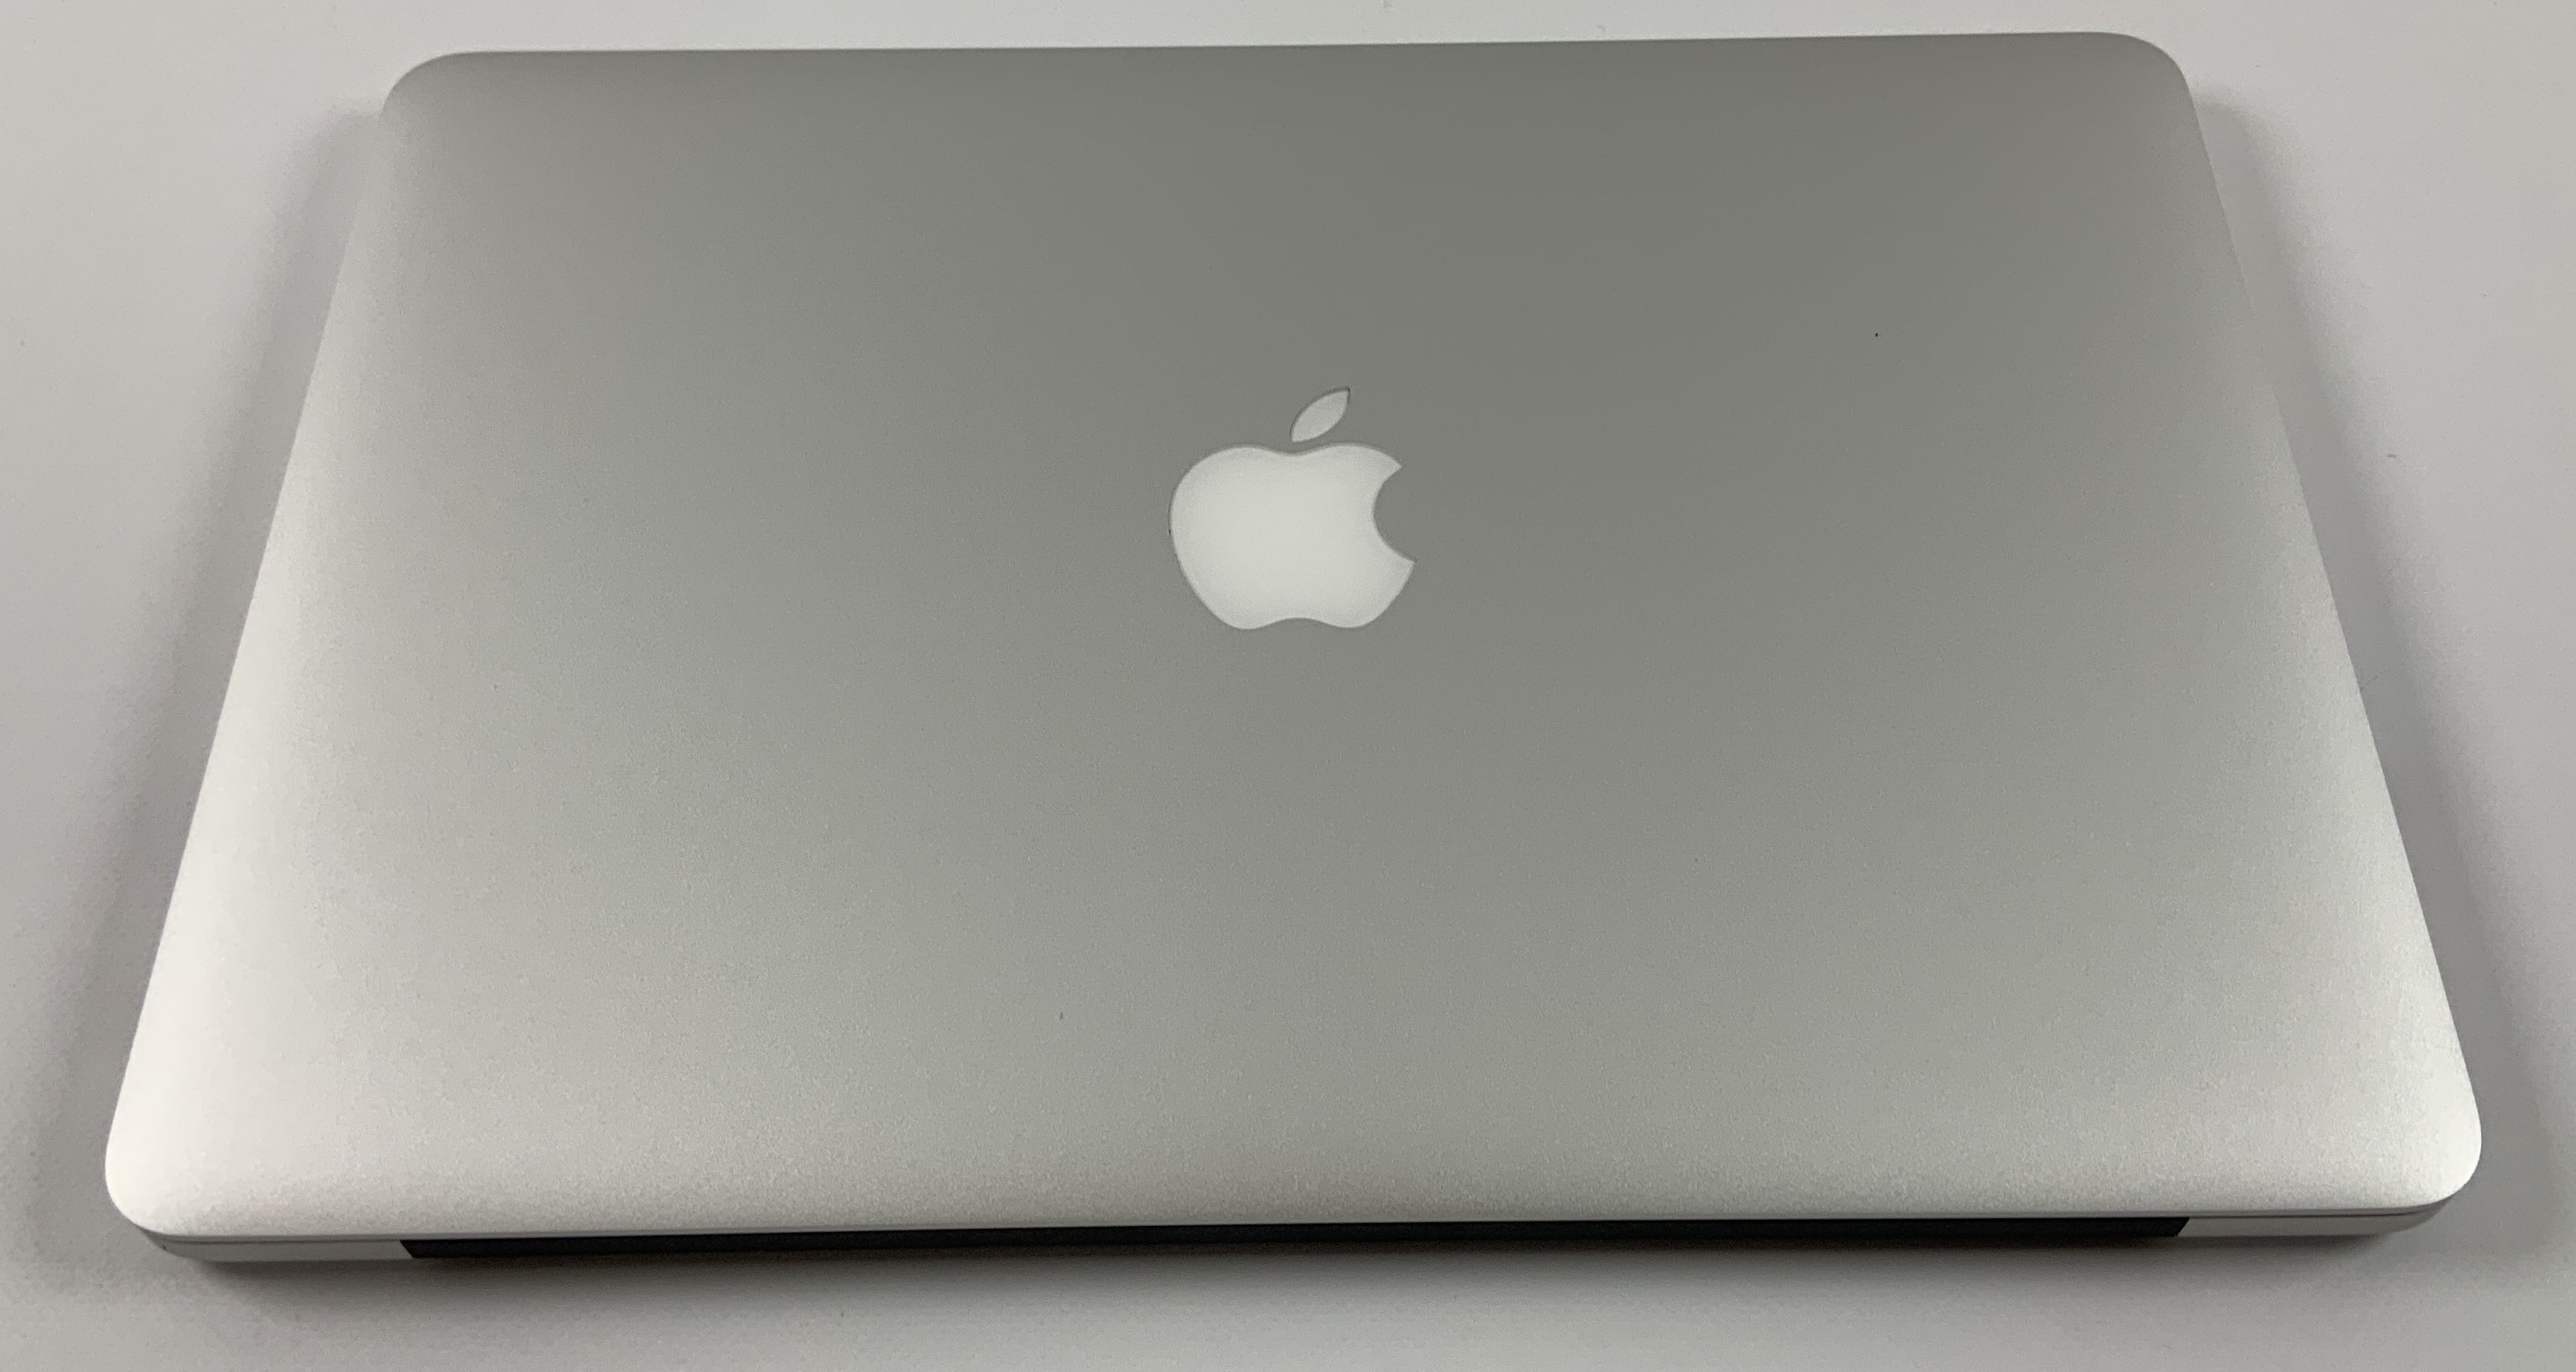 "MacBook Pro Retina 13"" Early 2015 (Intel Core i5 2.7 GHz 8 GB RAM 256 GB SSD), Intel Core i5 2.7 GHz, 8 GB RAM, 256 GB SSD, Kuva 2"